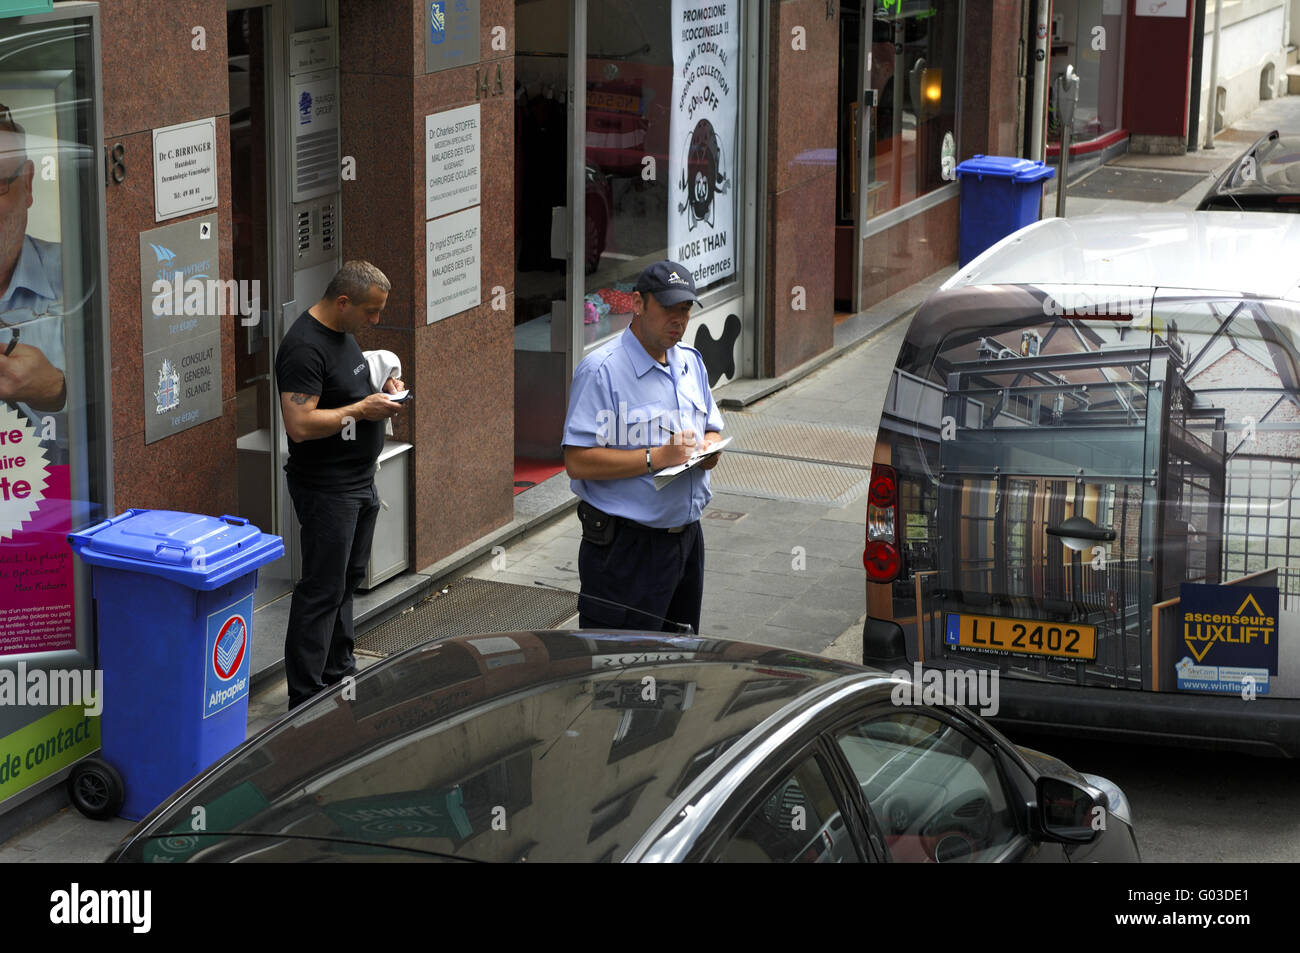 Traffic warden issueing a parking ticket,Luxemboug - Stock Image